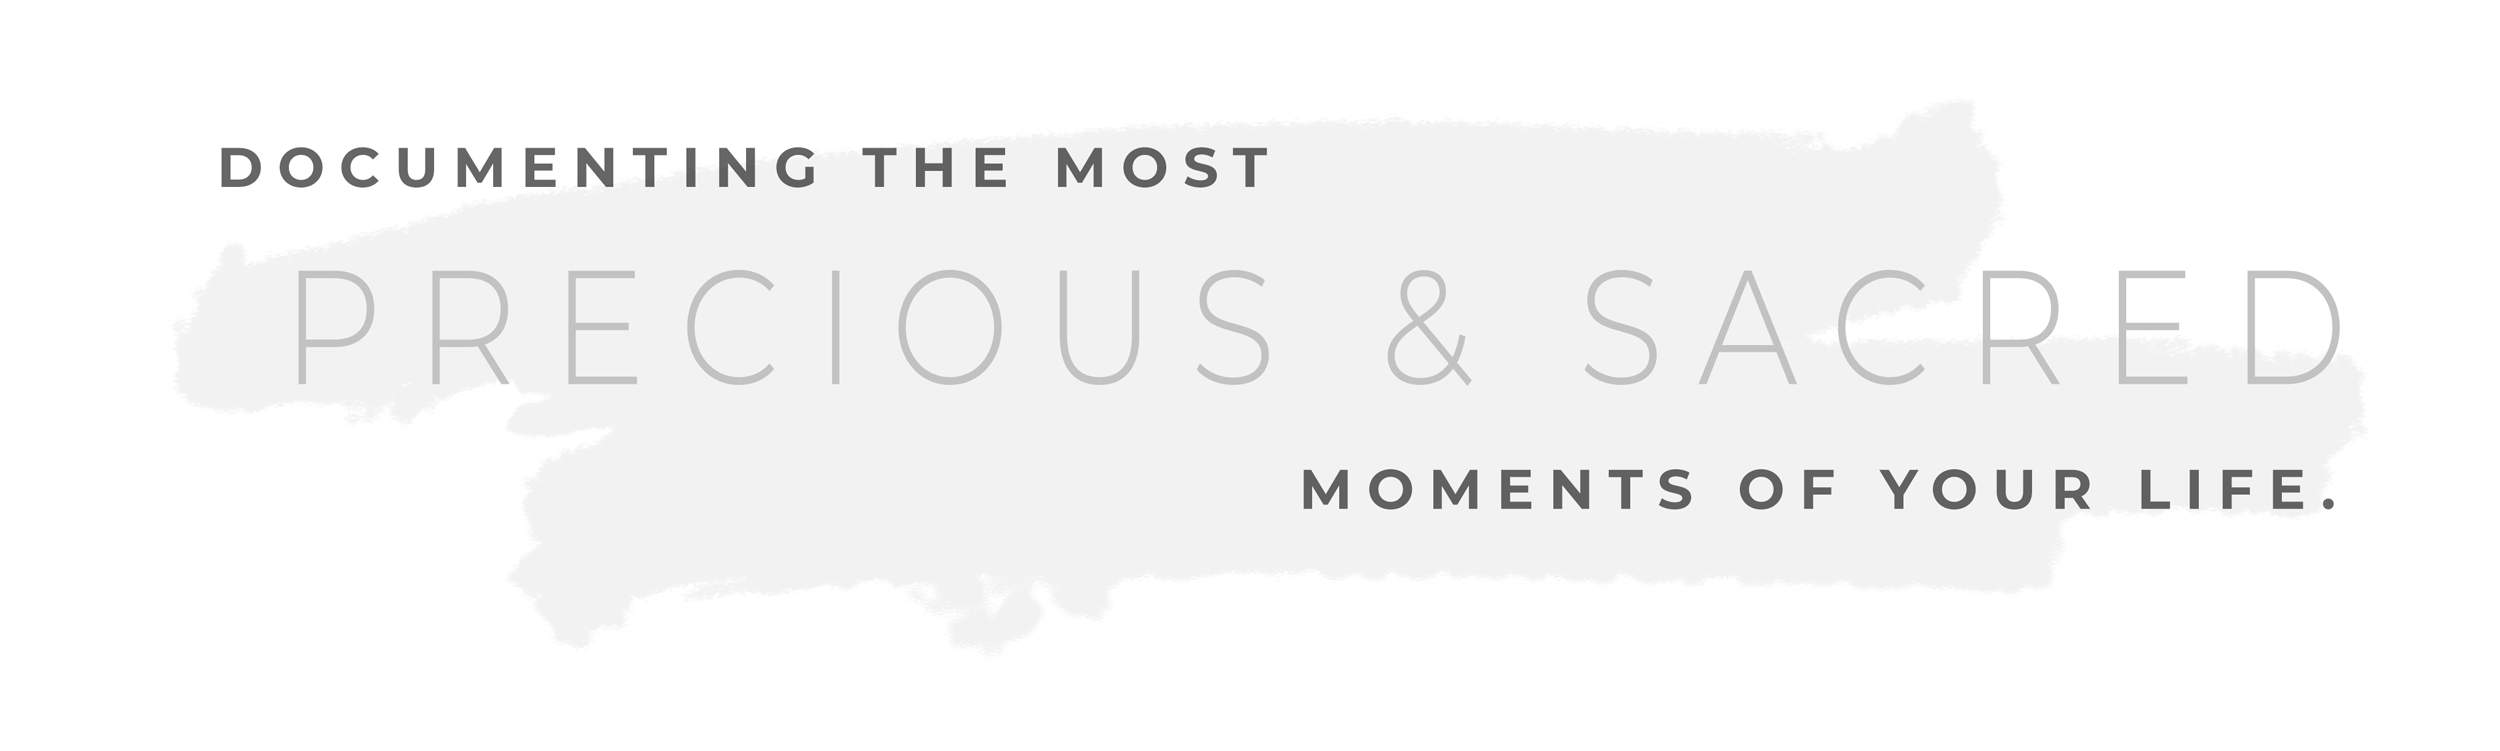 Documenting the most precious & sacred moments of your life quote image